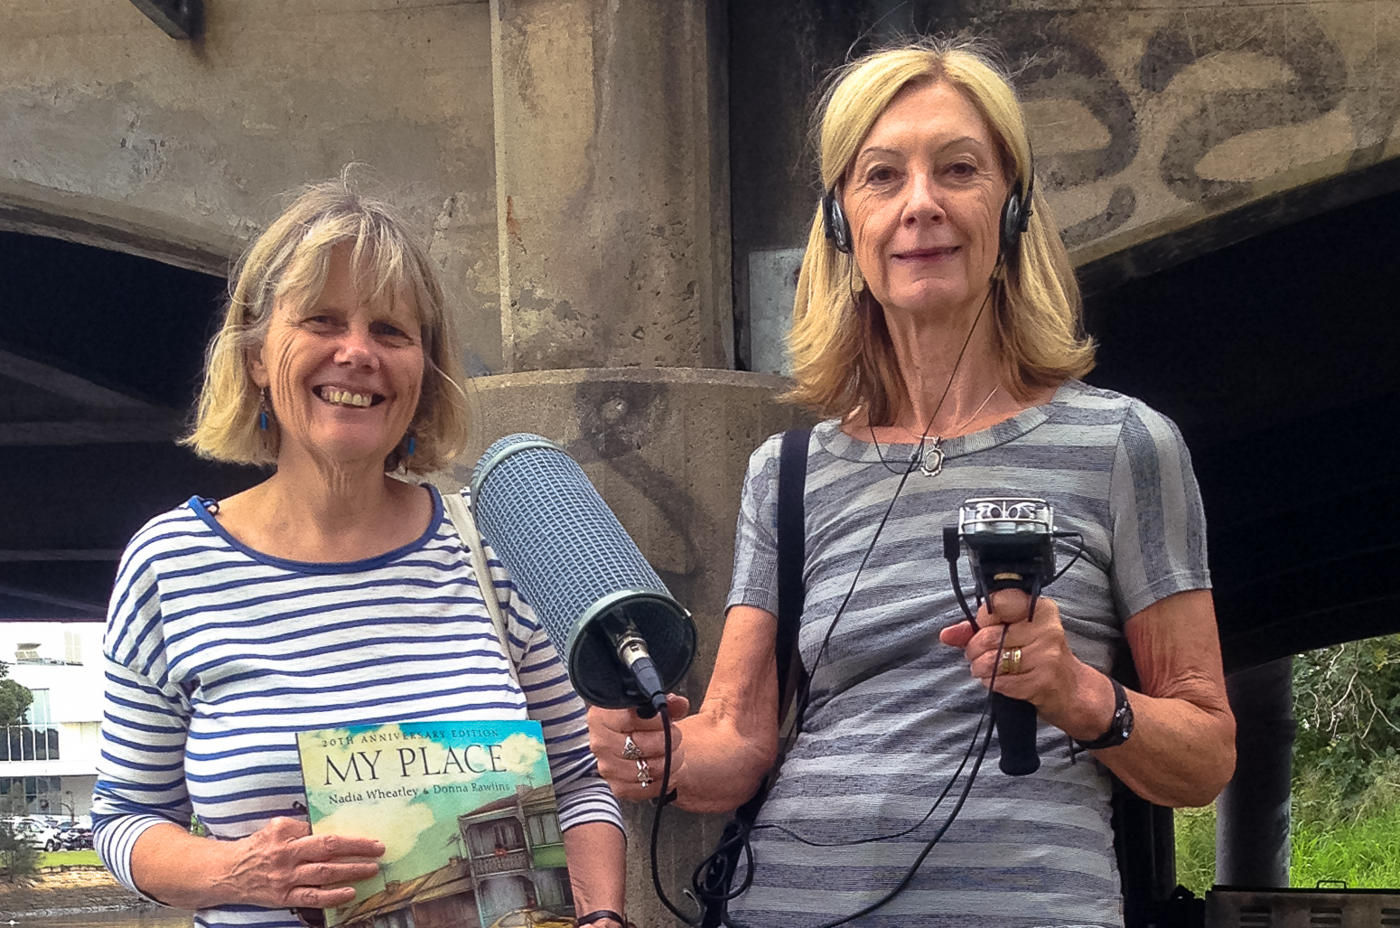 Robyn Ravlich records author Nadia Wheatley for a 2015 story aired on Earshot